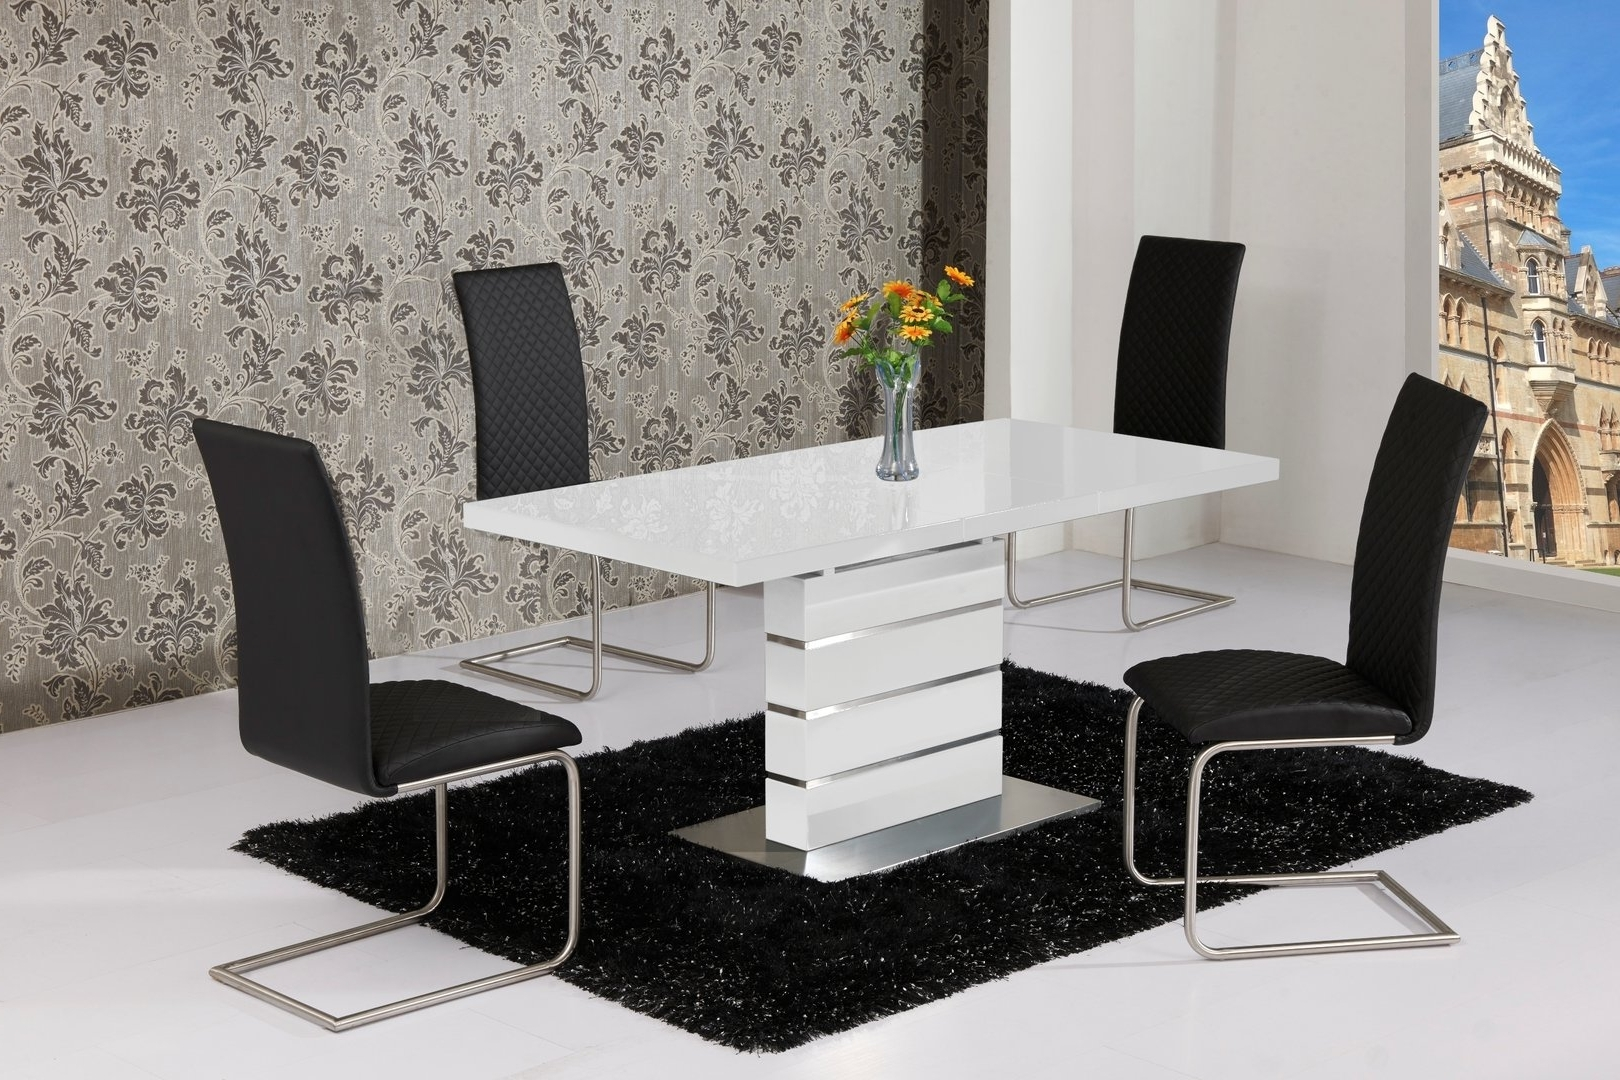 Black High Gloss Dining Tables And Chairs Intended For Latest Extending White High Gloss Dining Table And 4 Black Chairs Set (Gallery 21 of 25)